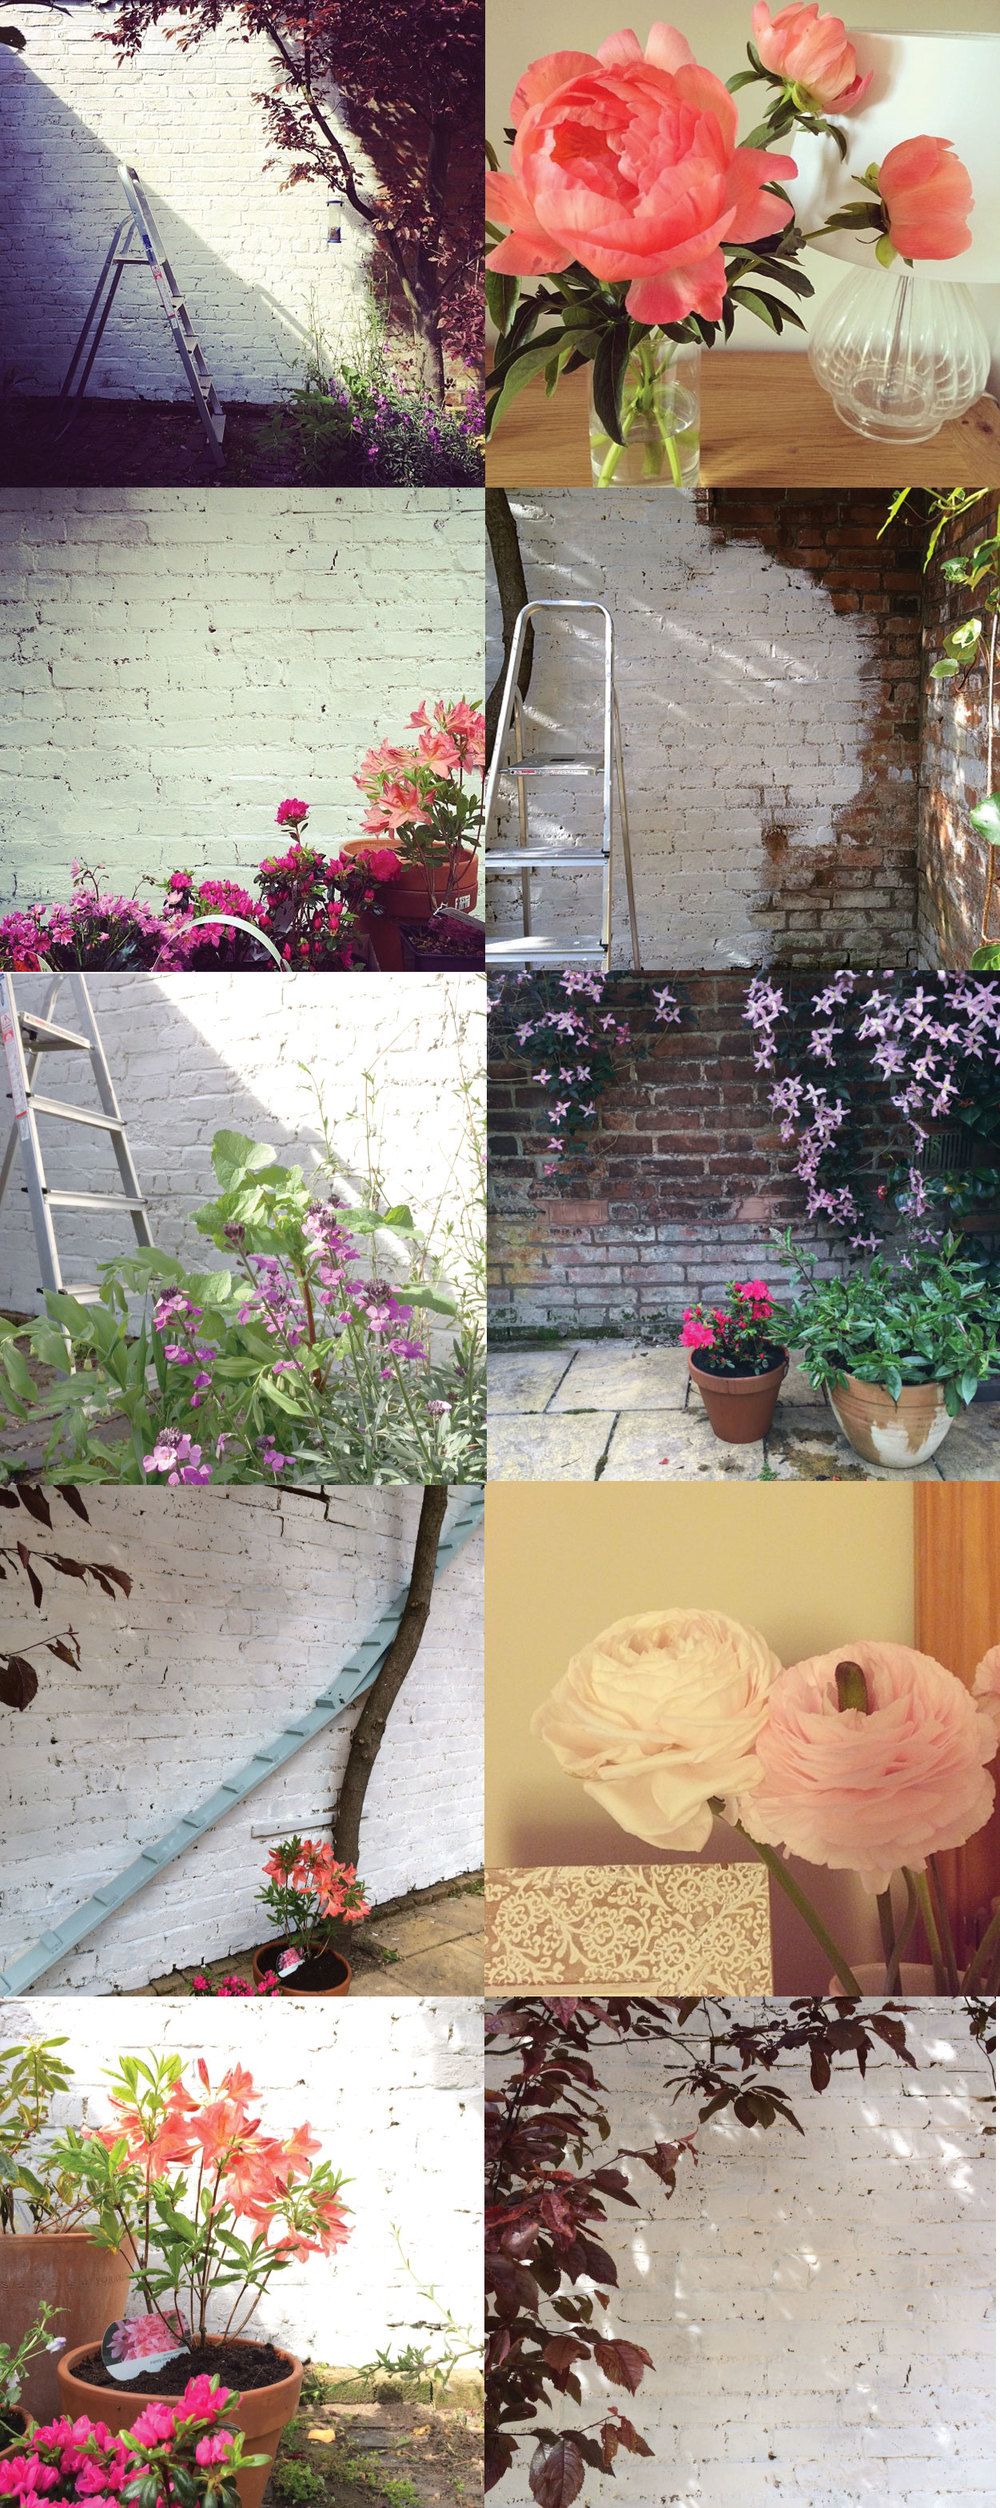 Some snaps from the garden and home this weekend.